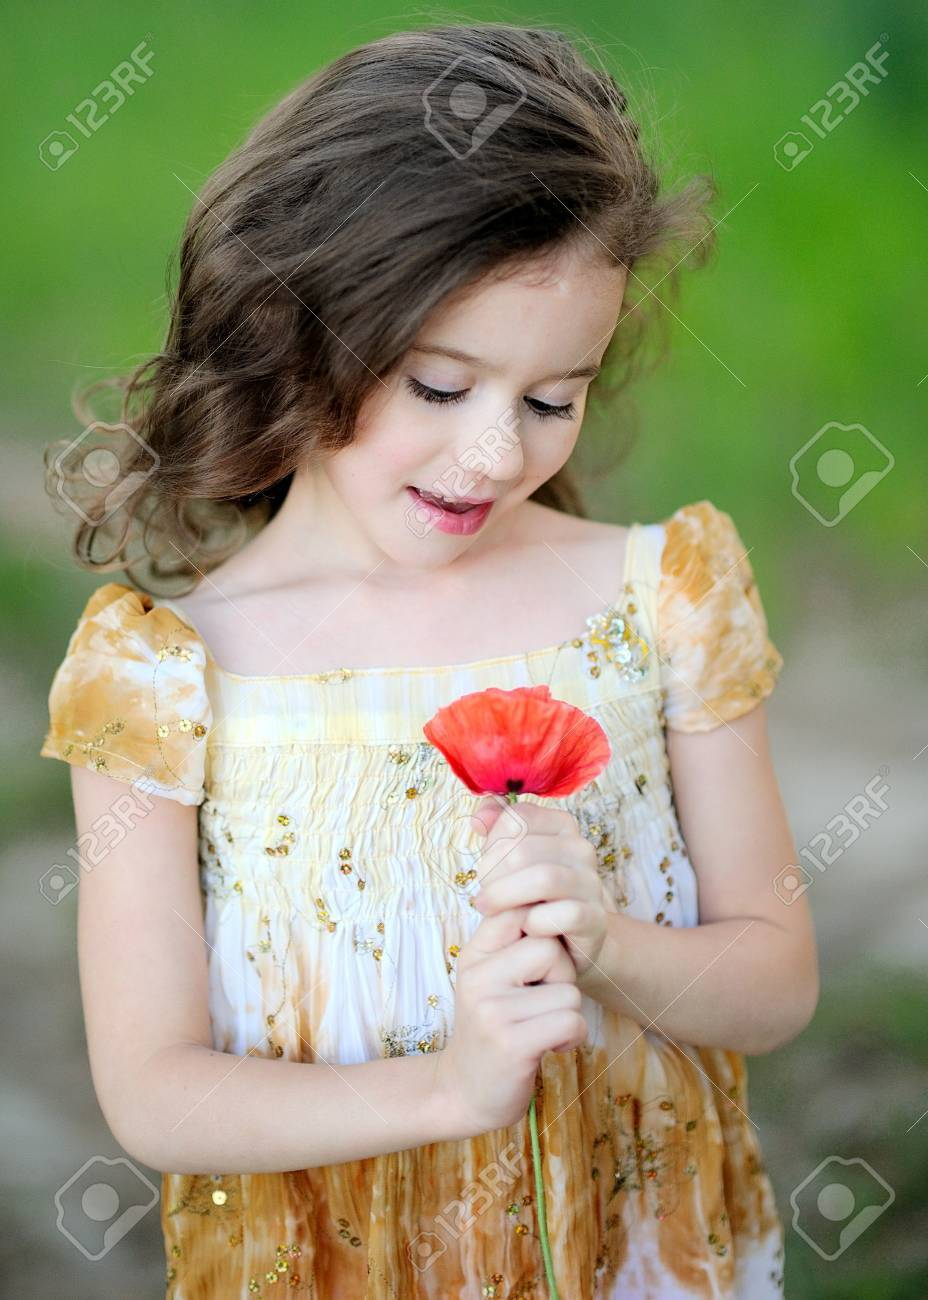 Portrait of Little girl with a flower poppy Stock Photo - 14186497